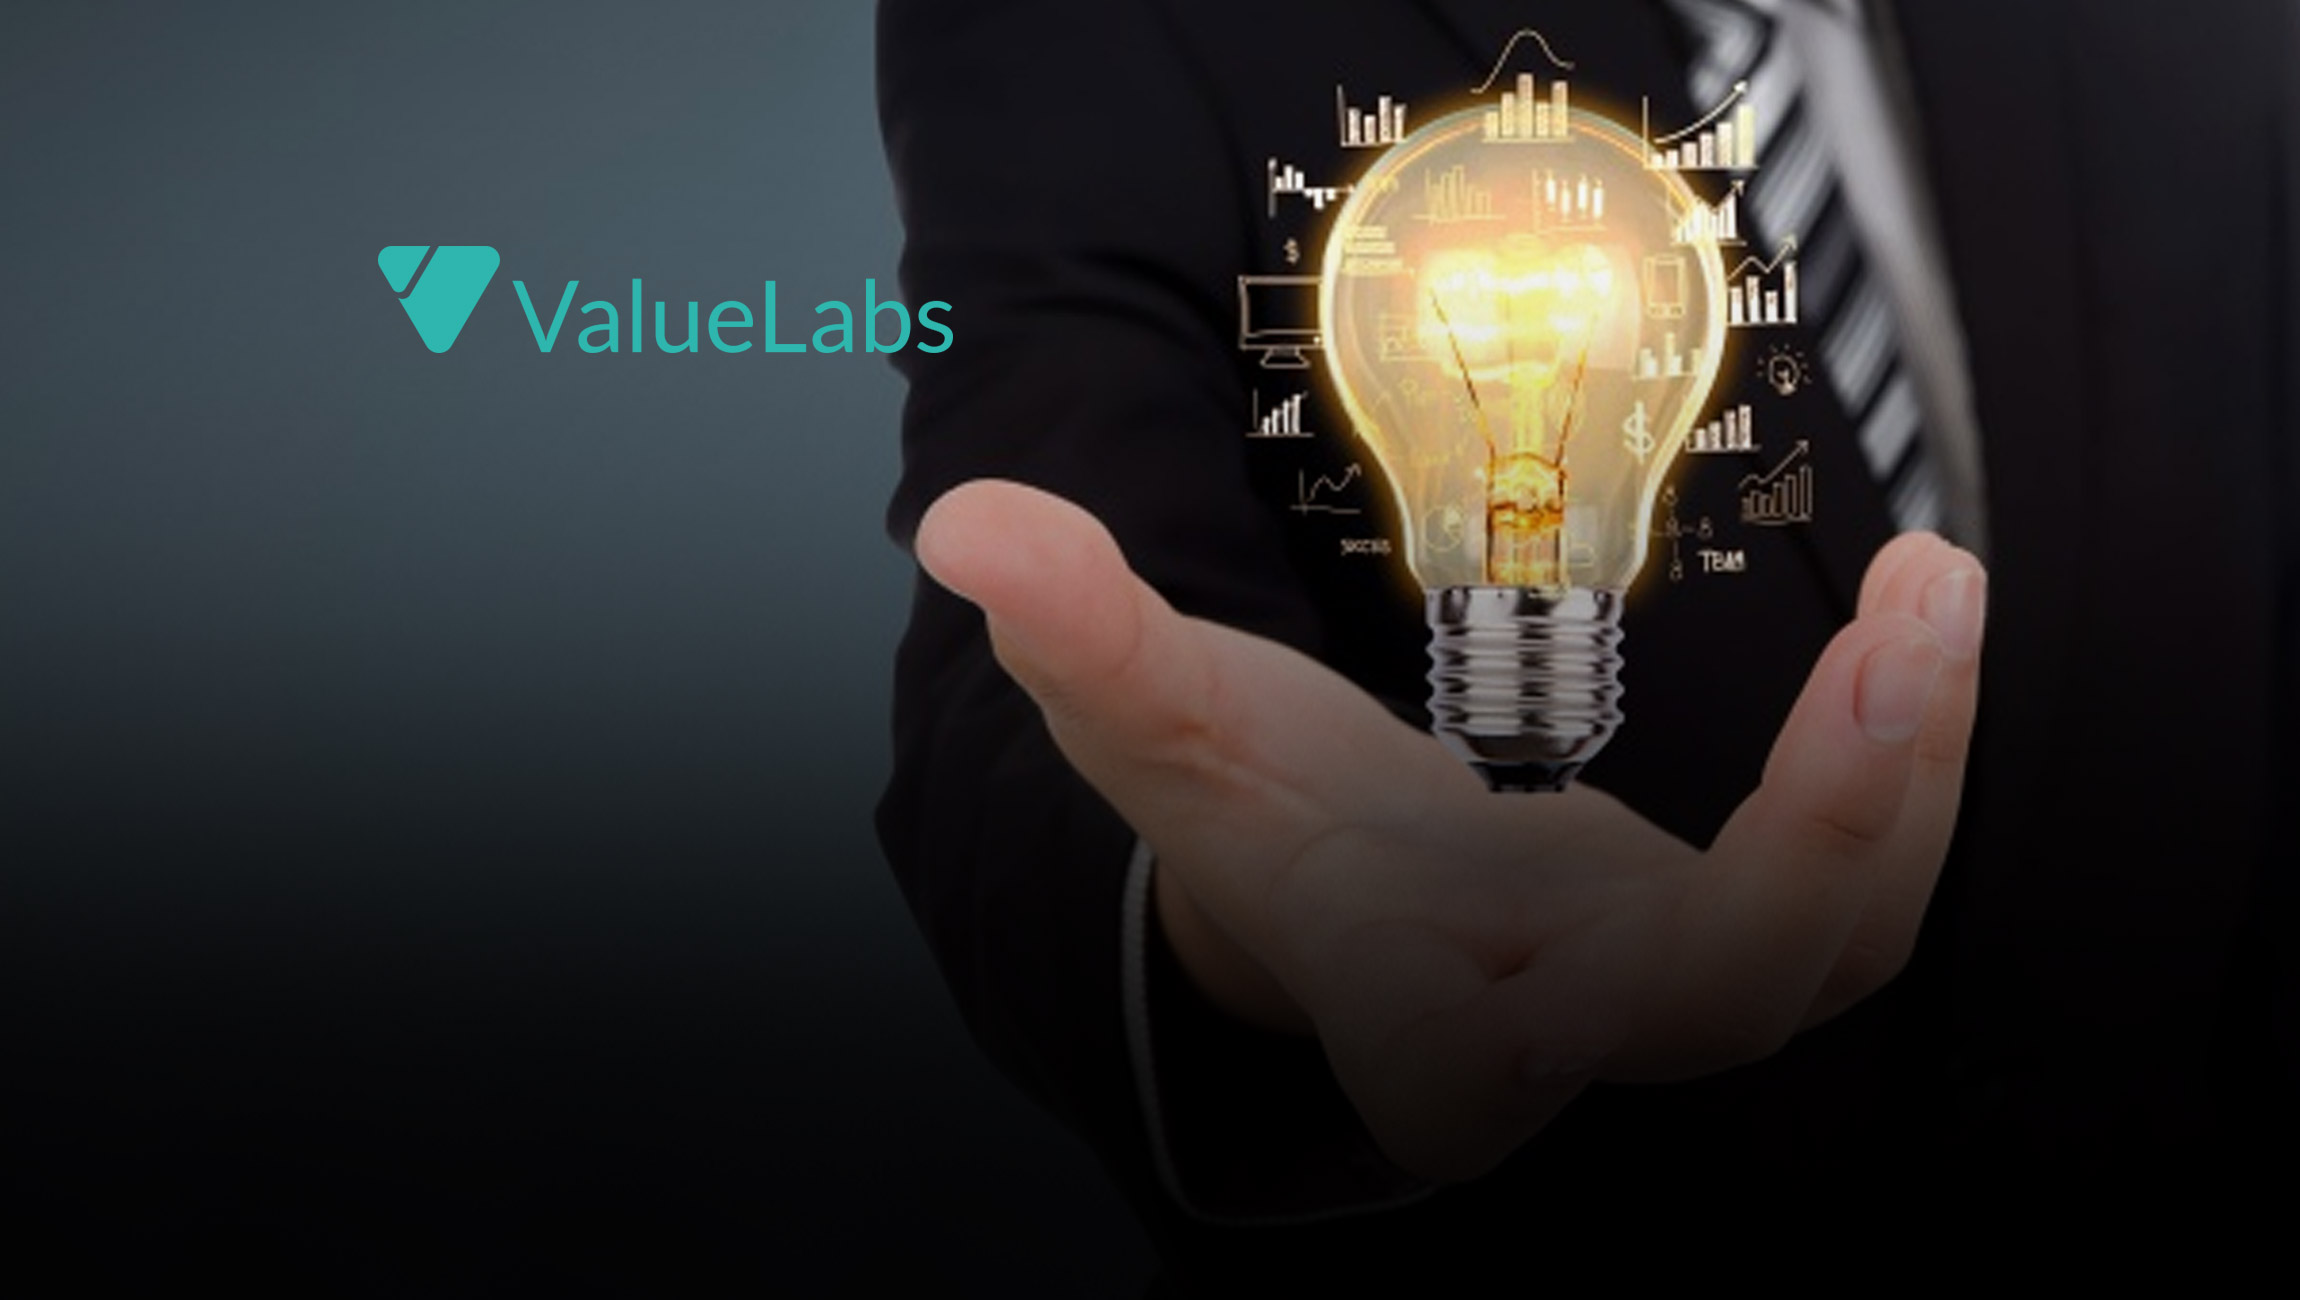 ValueLabs Launches Cognitive Ops as a New Service Line